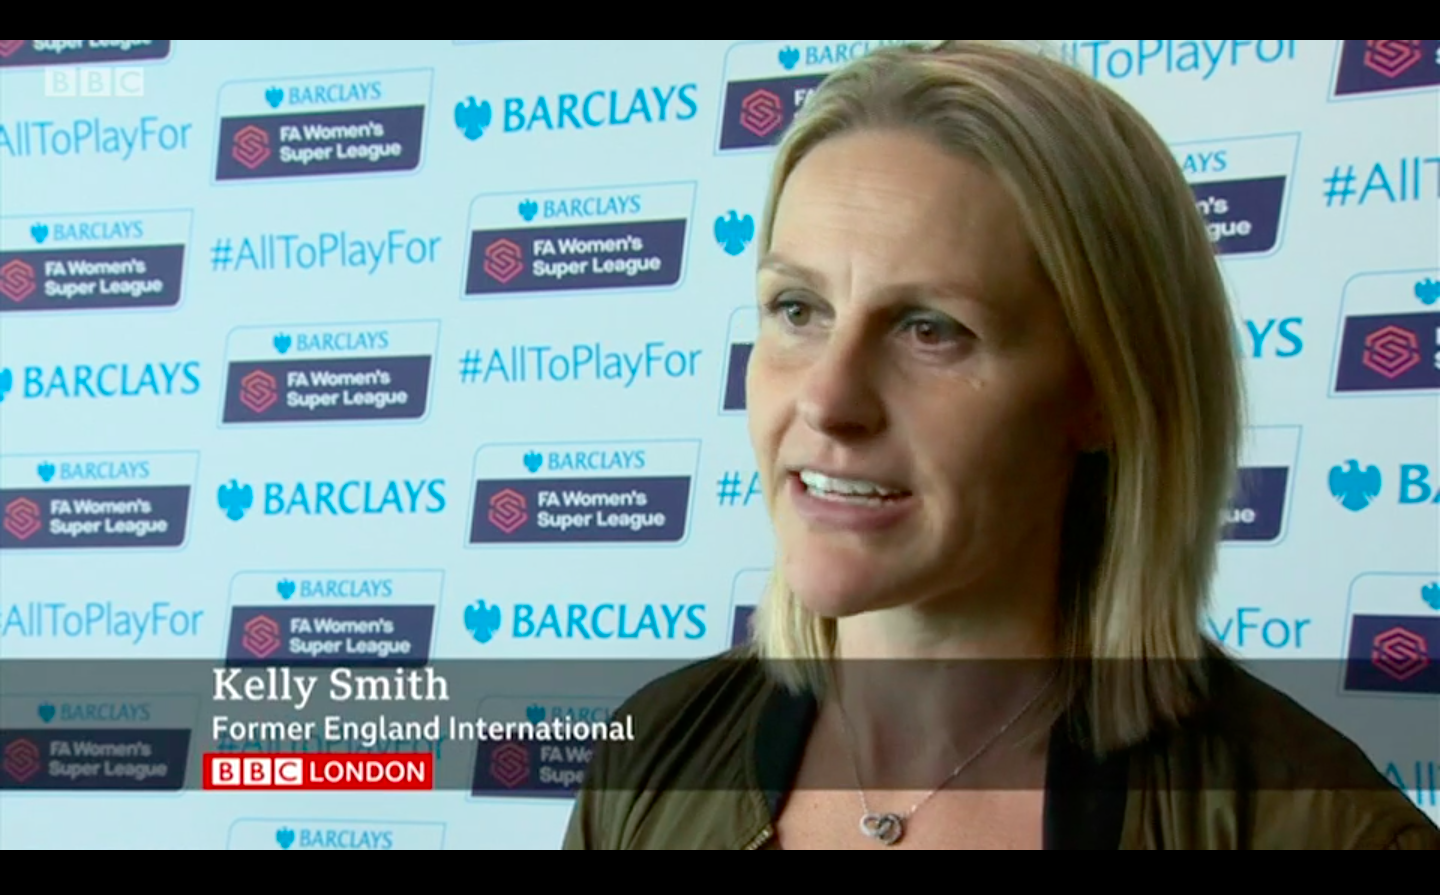 BBC London at SB - Kelly Smith - 9:9:19.png